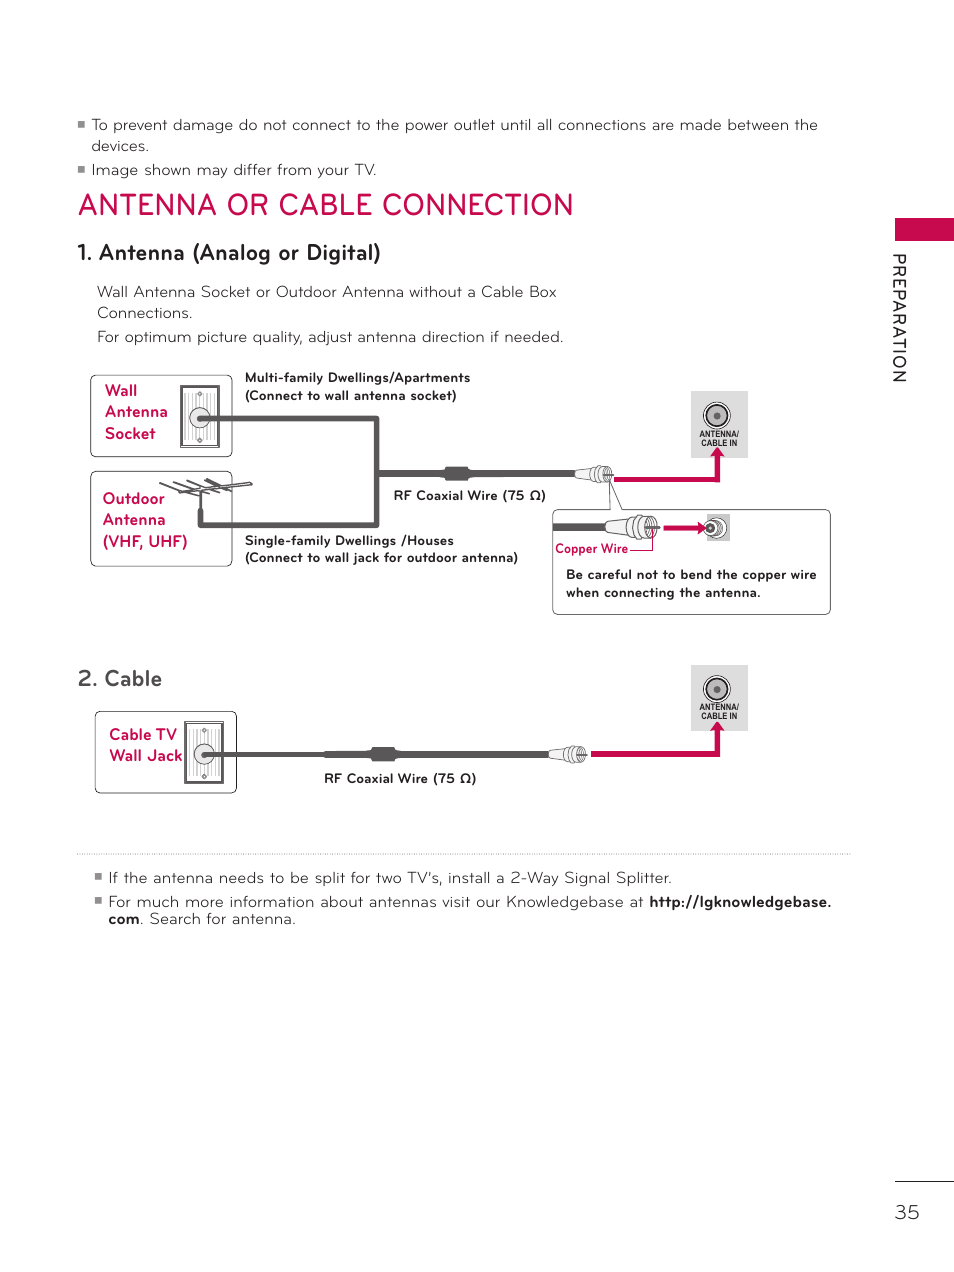 hight resolution of antenna or cable connection antenna analog or digital cable lg 42ld520 user manual page 35 172